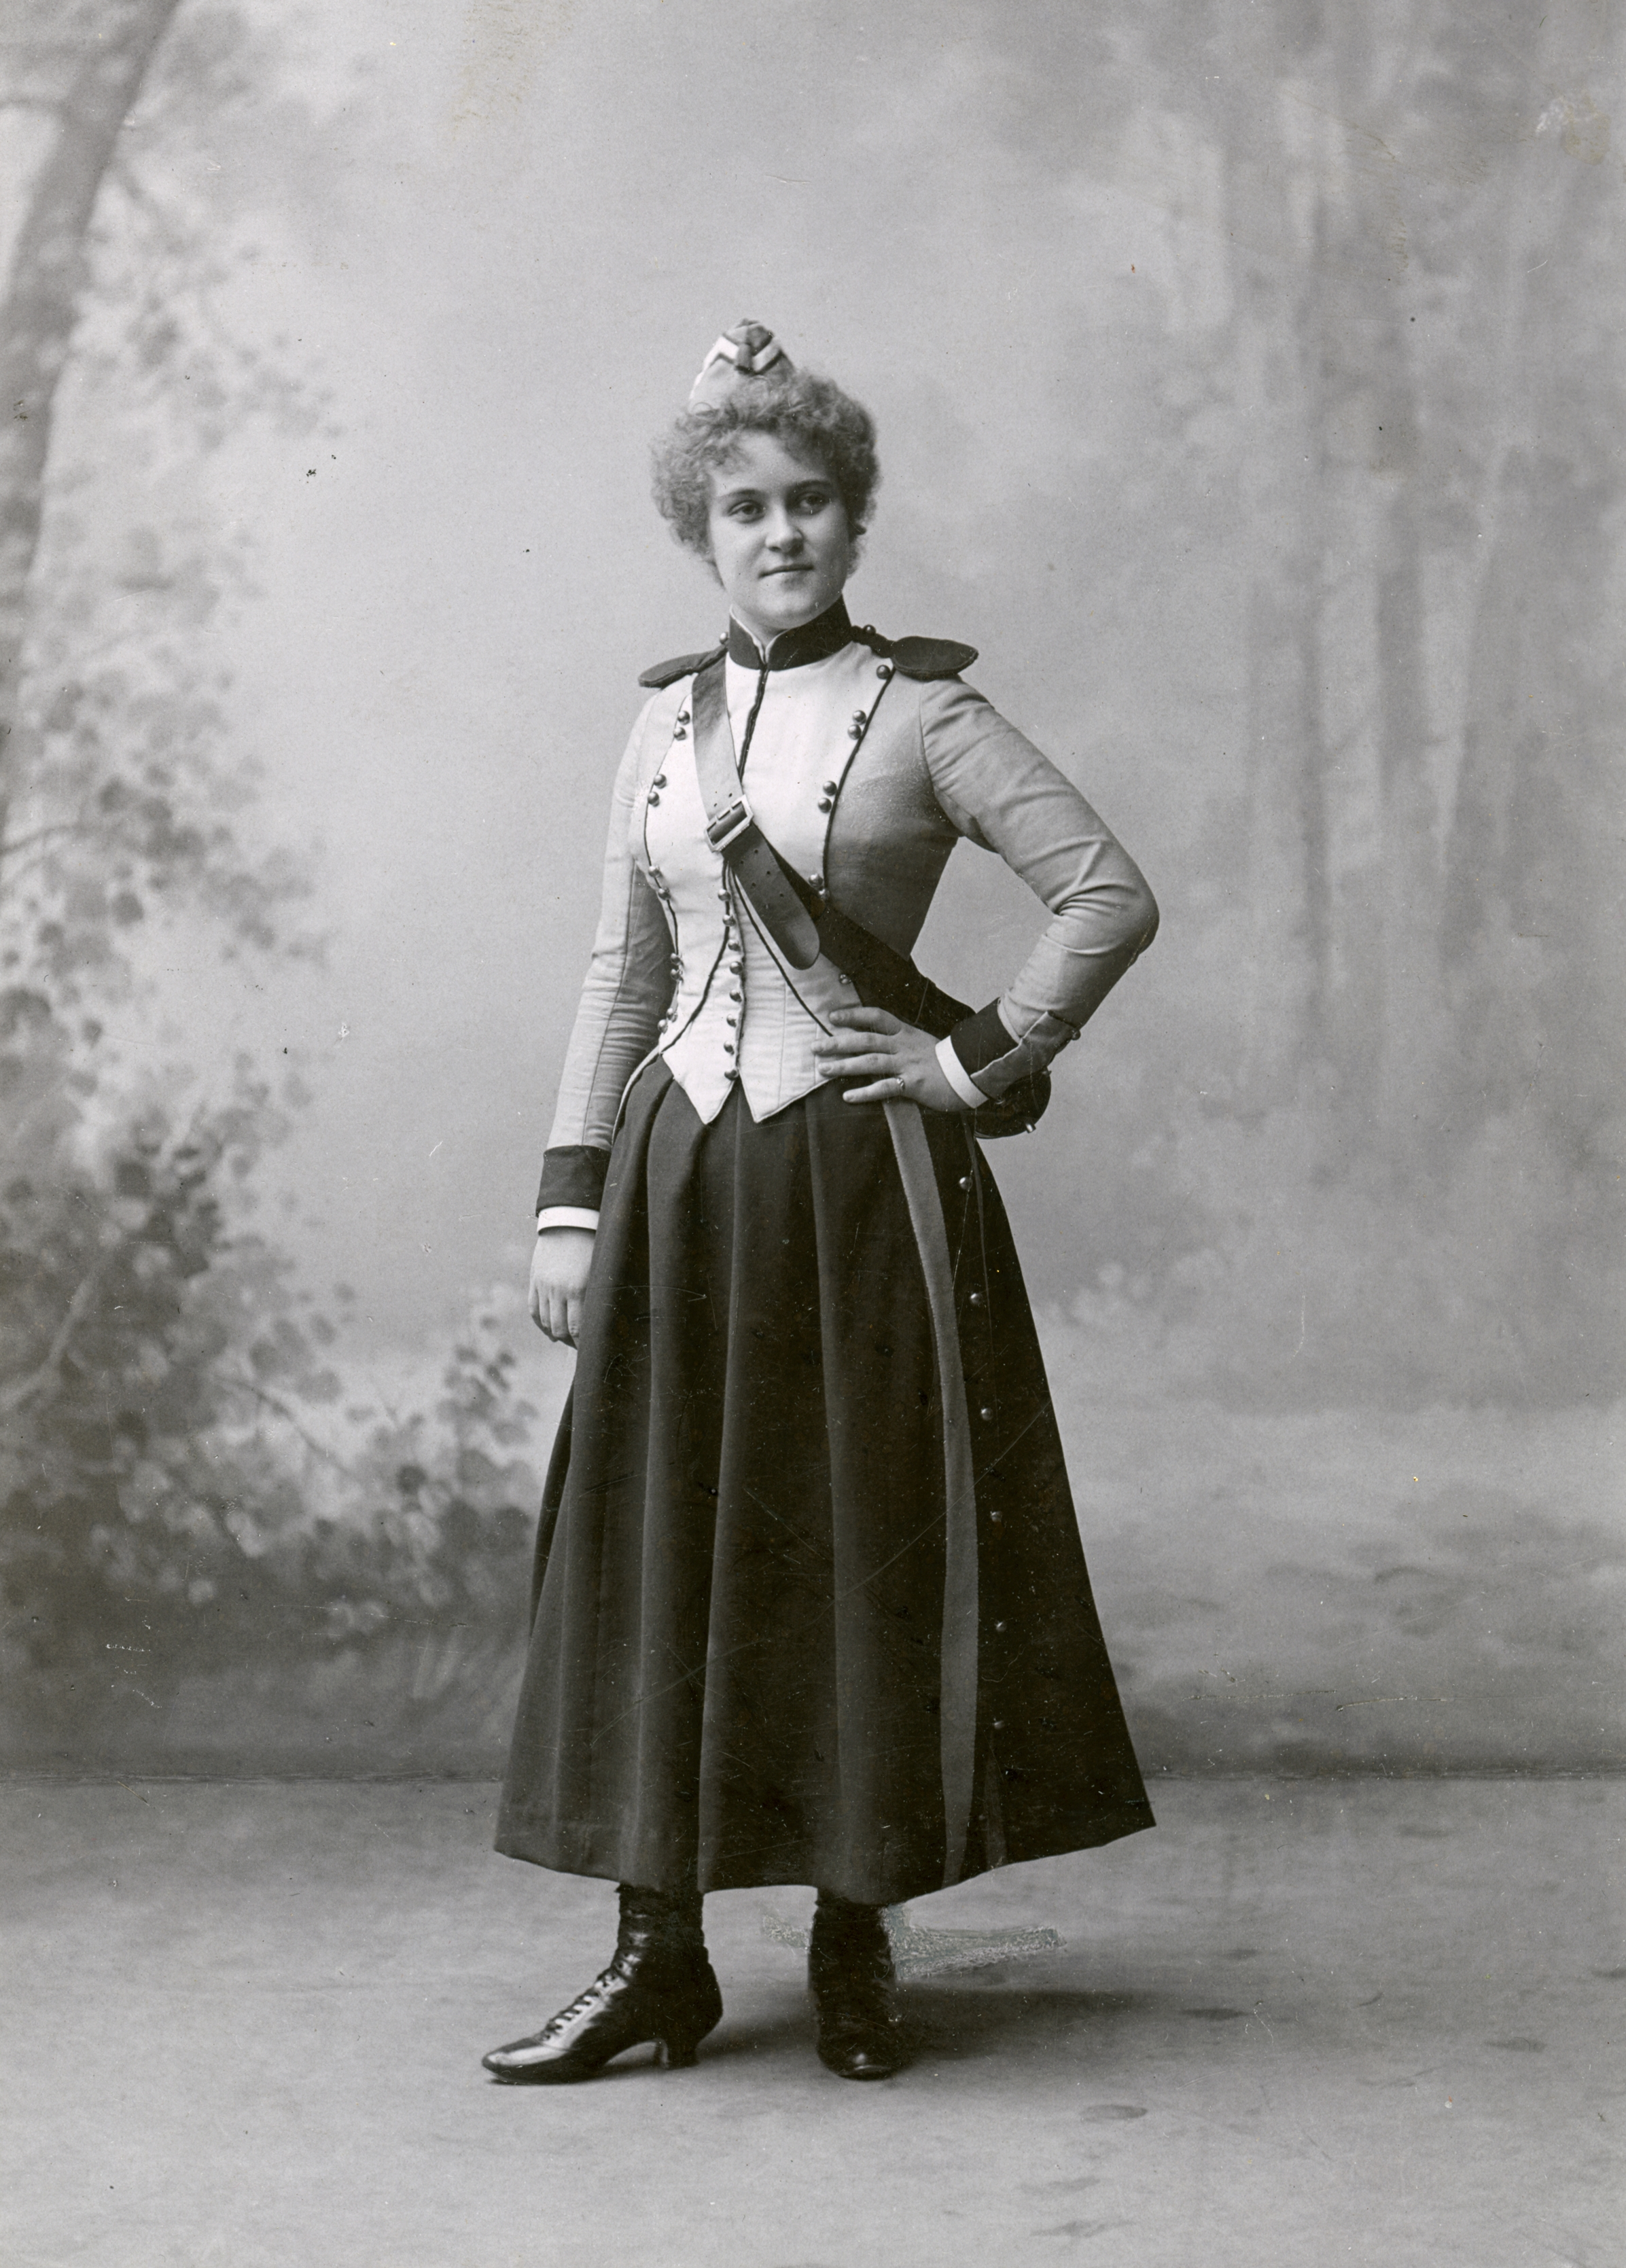 Anna Oscàr (Anna Thulin at the time) as Marie in the production of La fille du régiment at the Royal Swedish Opera, 1898. Musik- och teaterbiblioteket, Stockholm (H3_208)